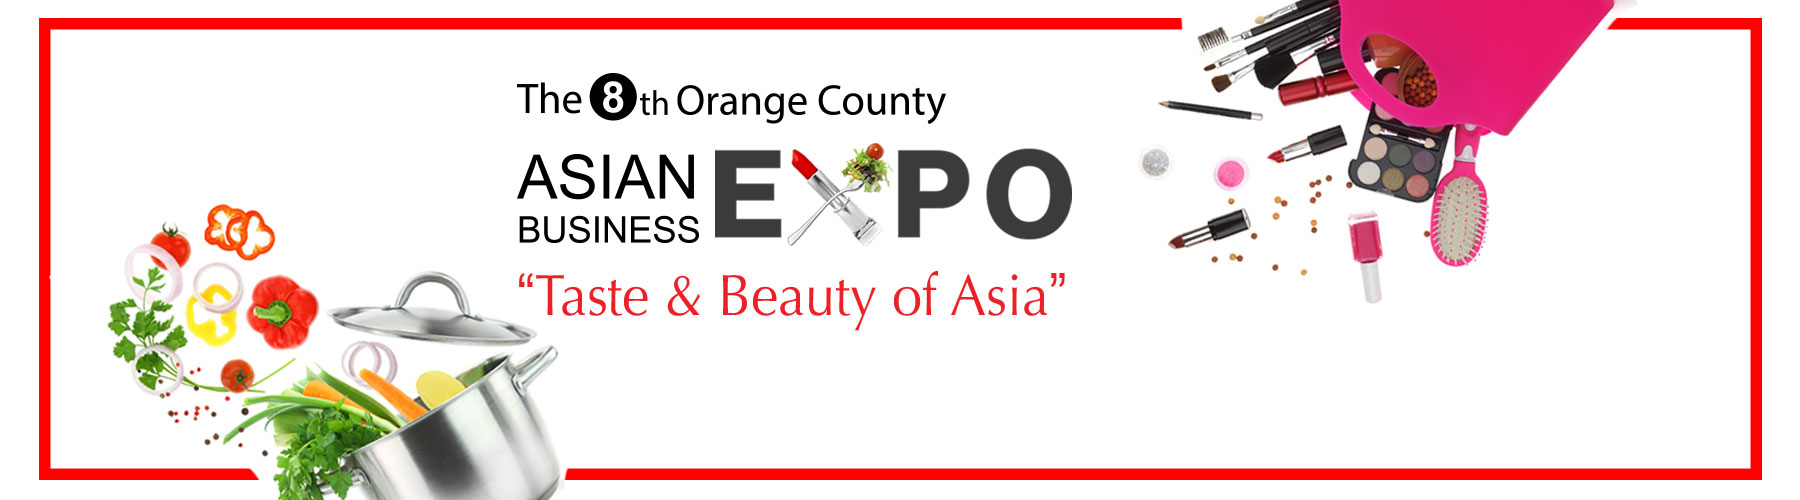 2018 Orange County Asian Business Expo